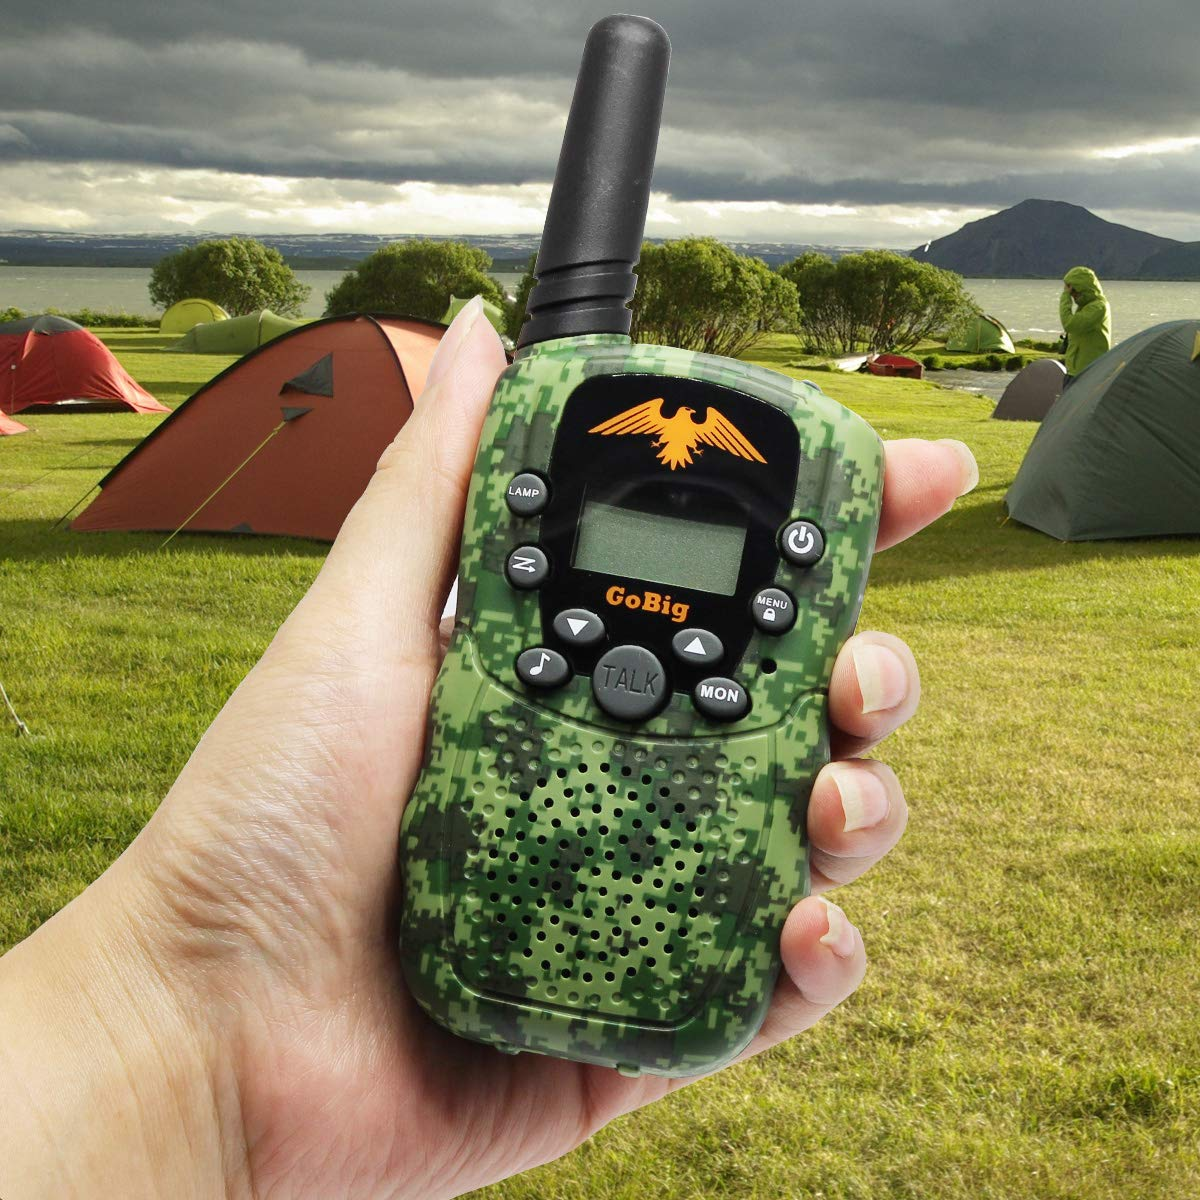 GoBig Walkie Talkies for Kids Voice Activated Walkie Talkies for Adults and Kids 3 Mile Range 2 Way Radio Walkie Talkies Built in Flash Light Camo Green (2 Pack) by GoBig (Image #5)